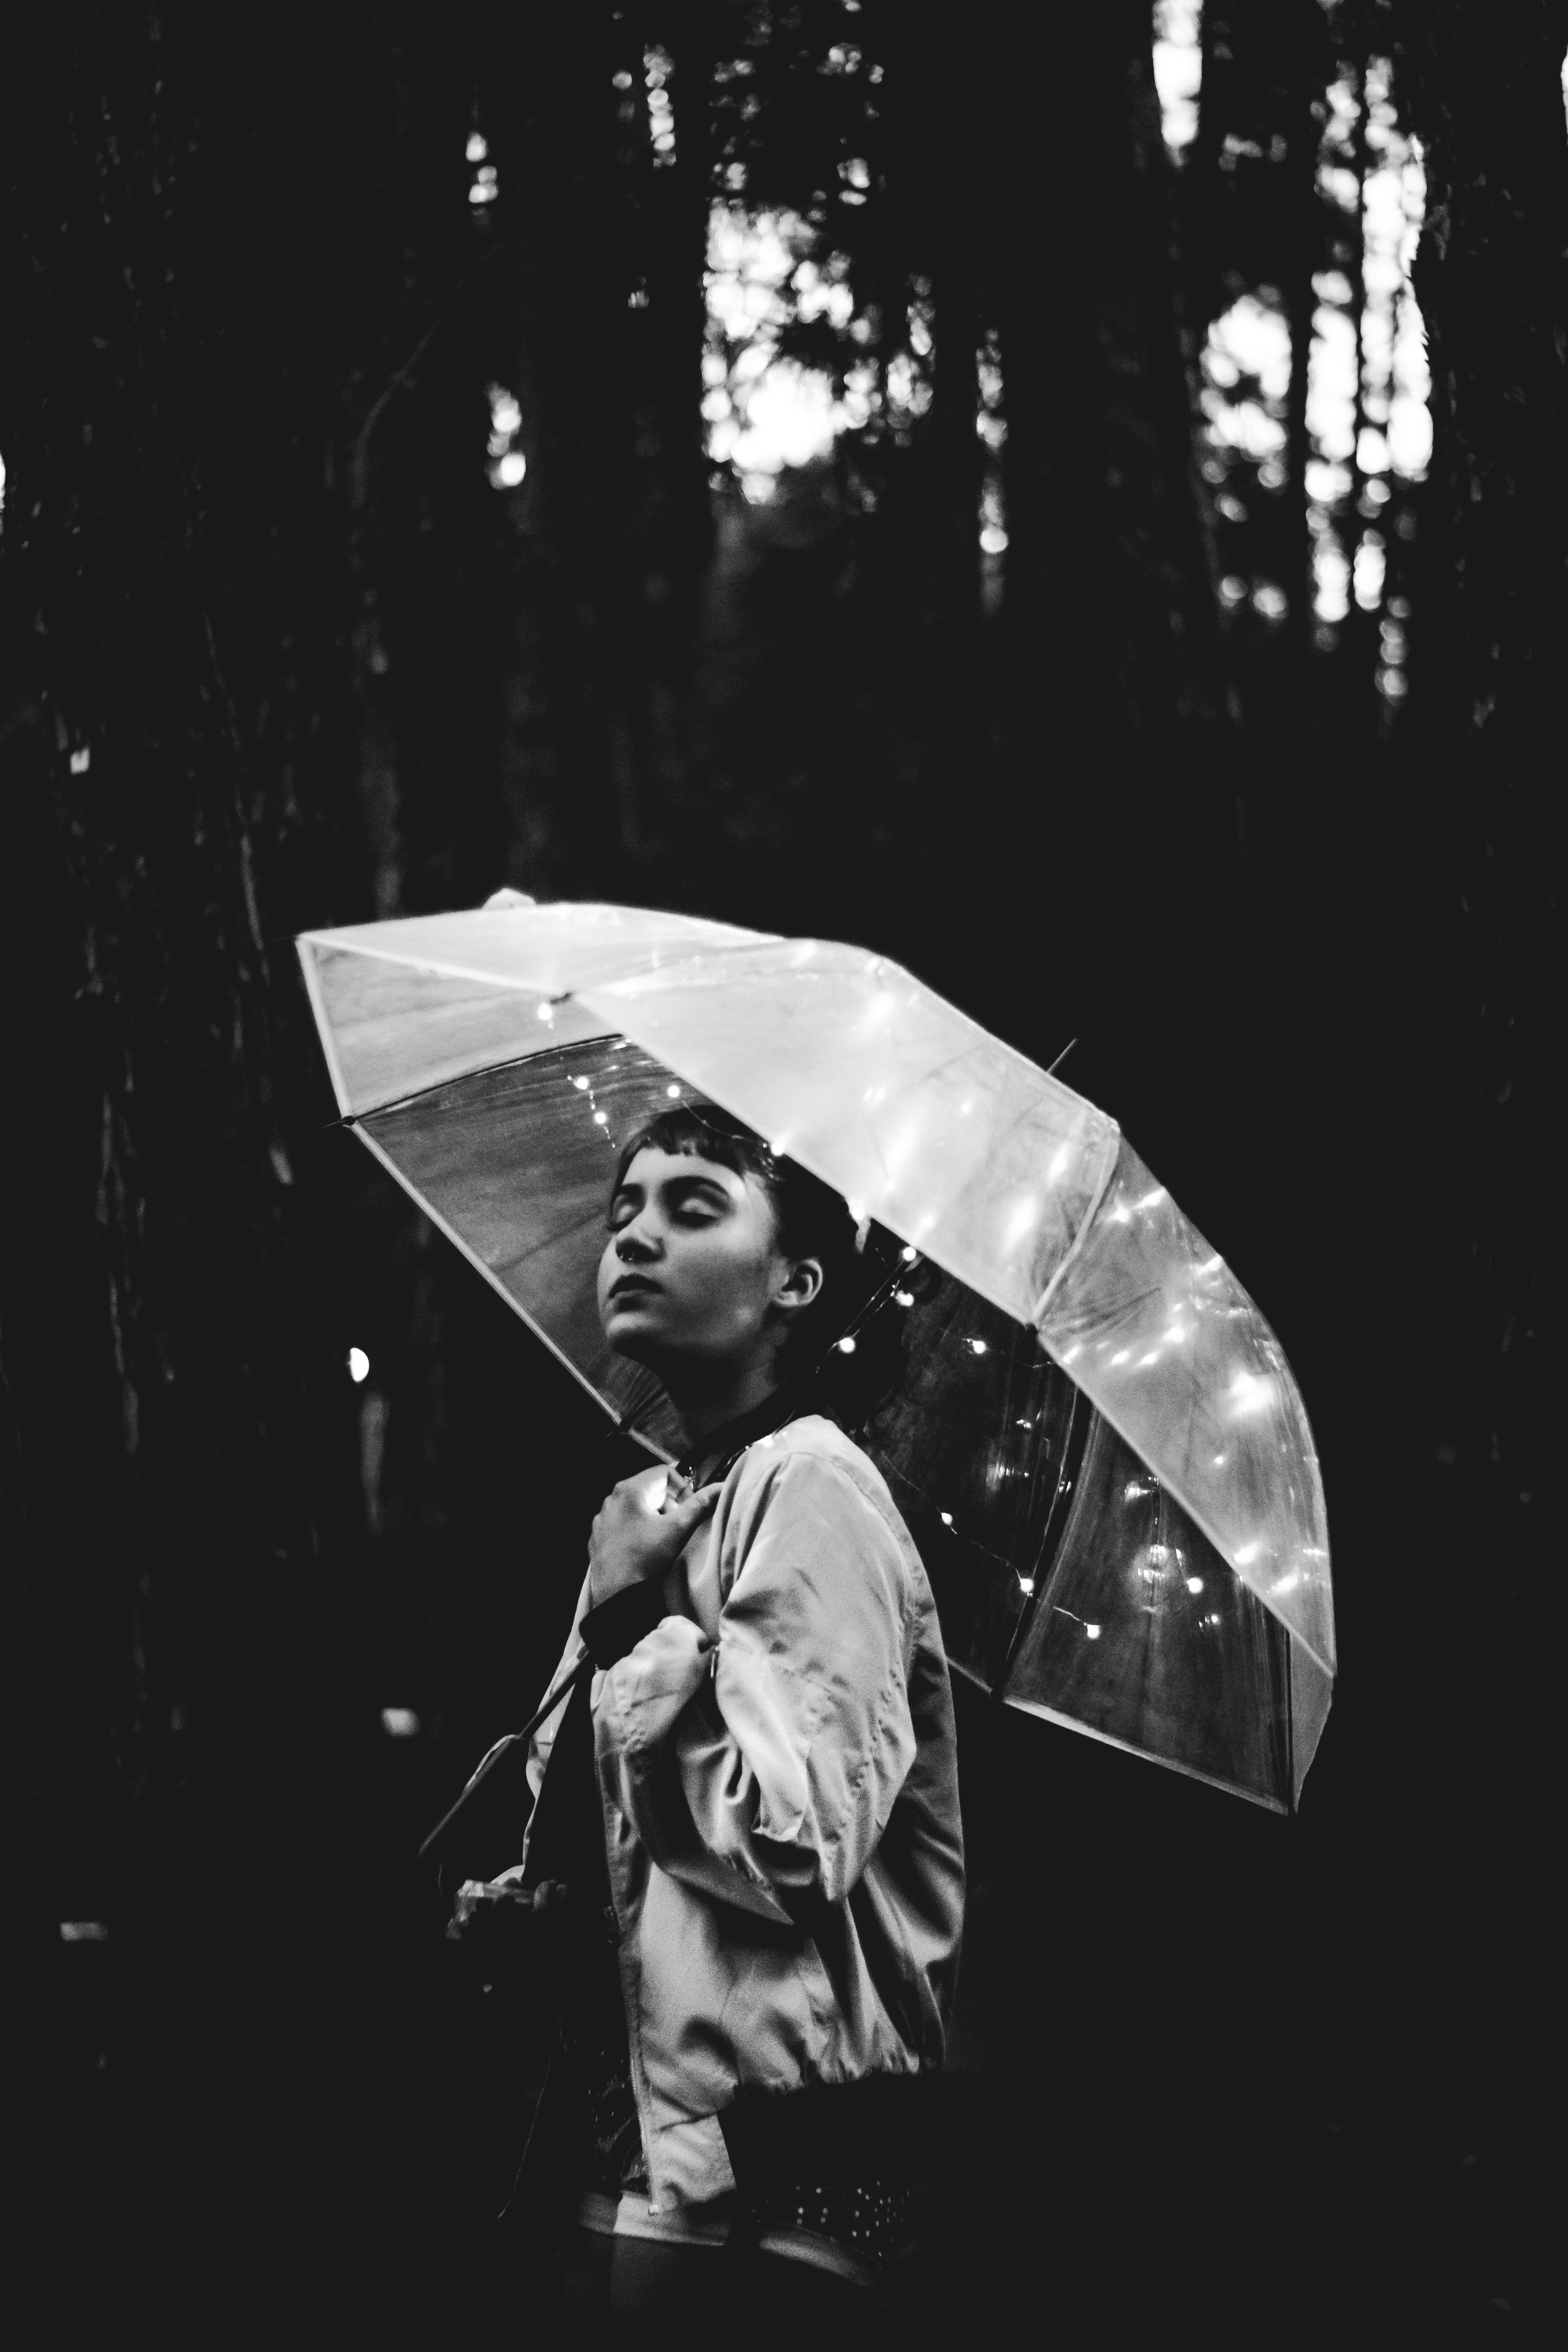 Grayscale Image of Woman Walking Through the Rain While Holding Umbrella